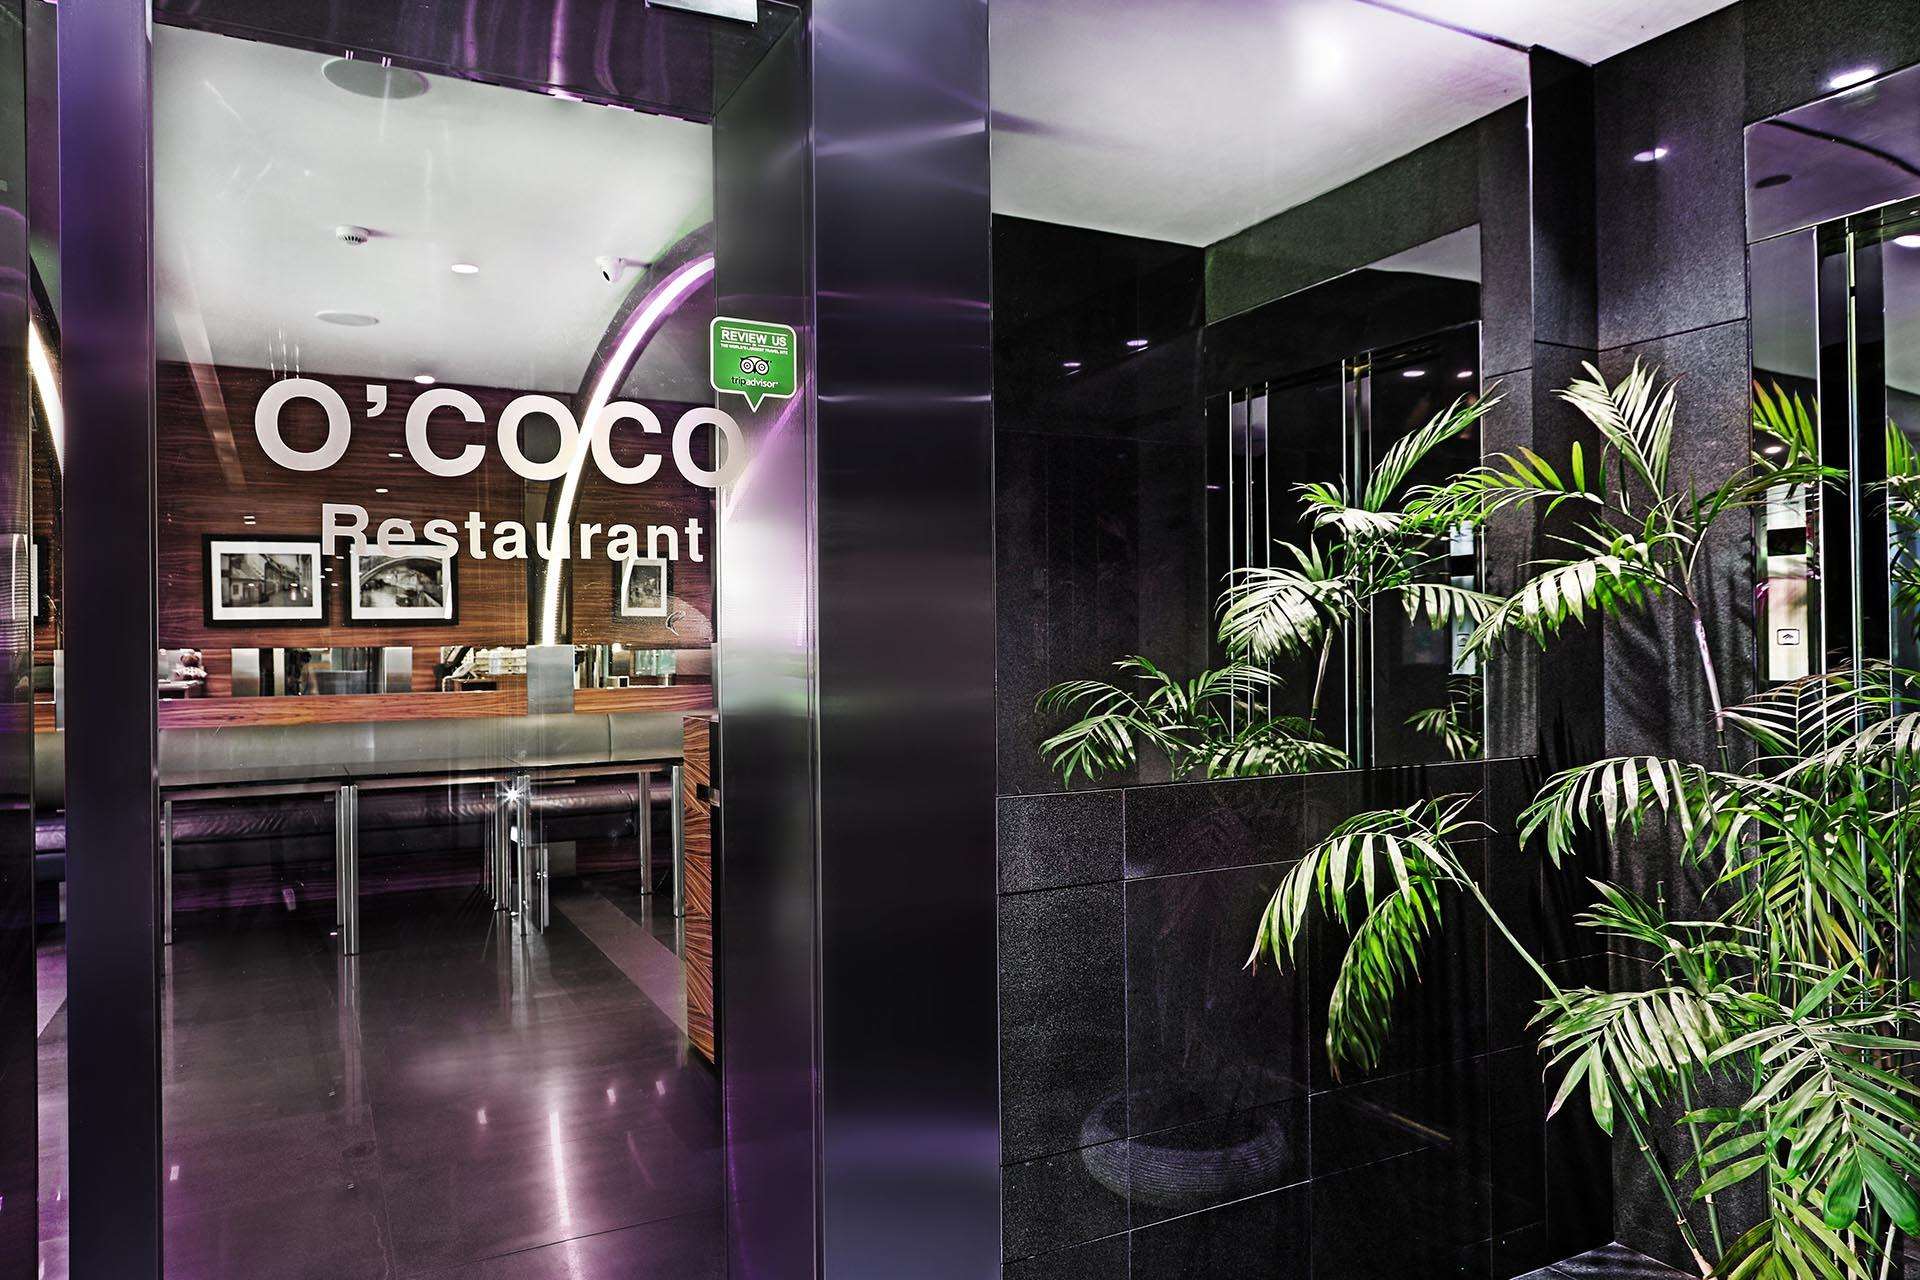 O'cocco Restaurant outside